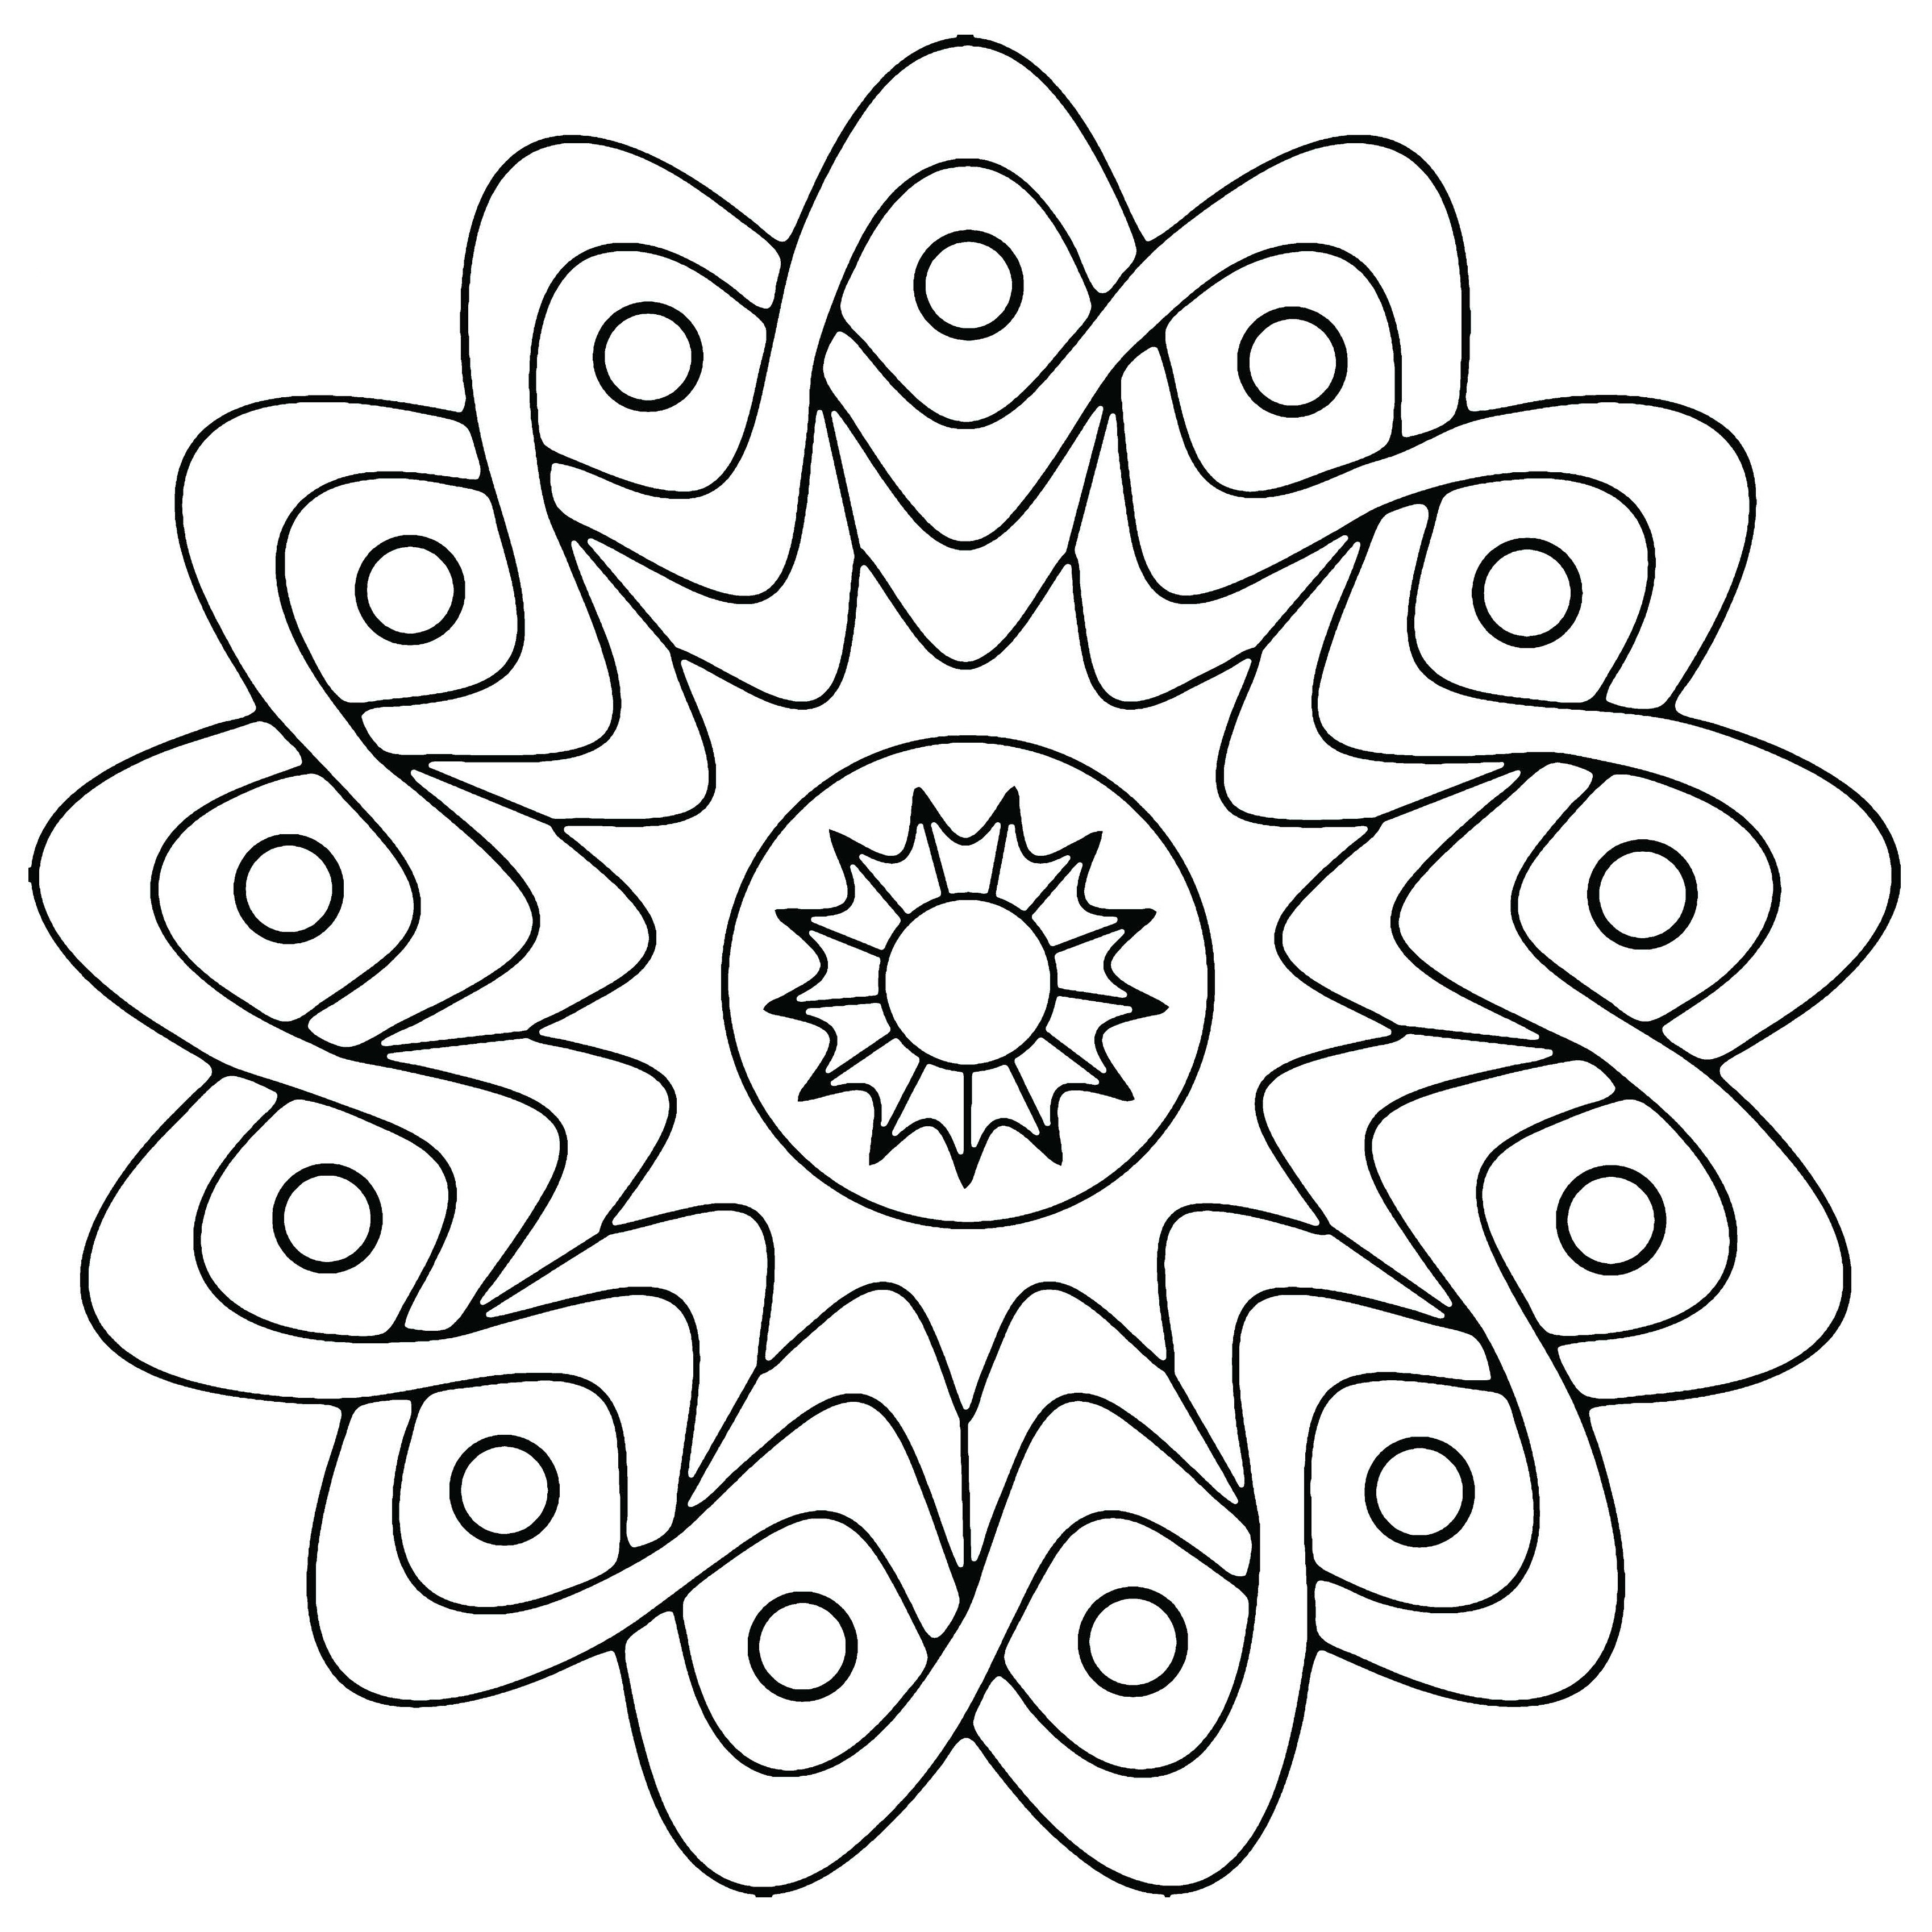 Simple Adult Coloring Pages  Free Printable Geometric Coloring Pages For Kids